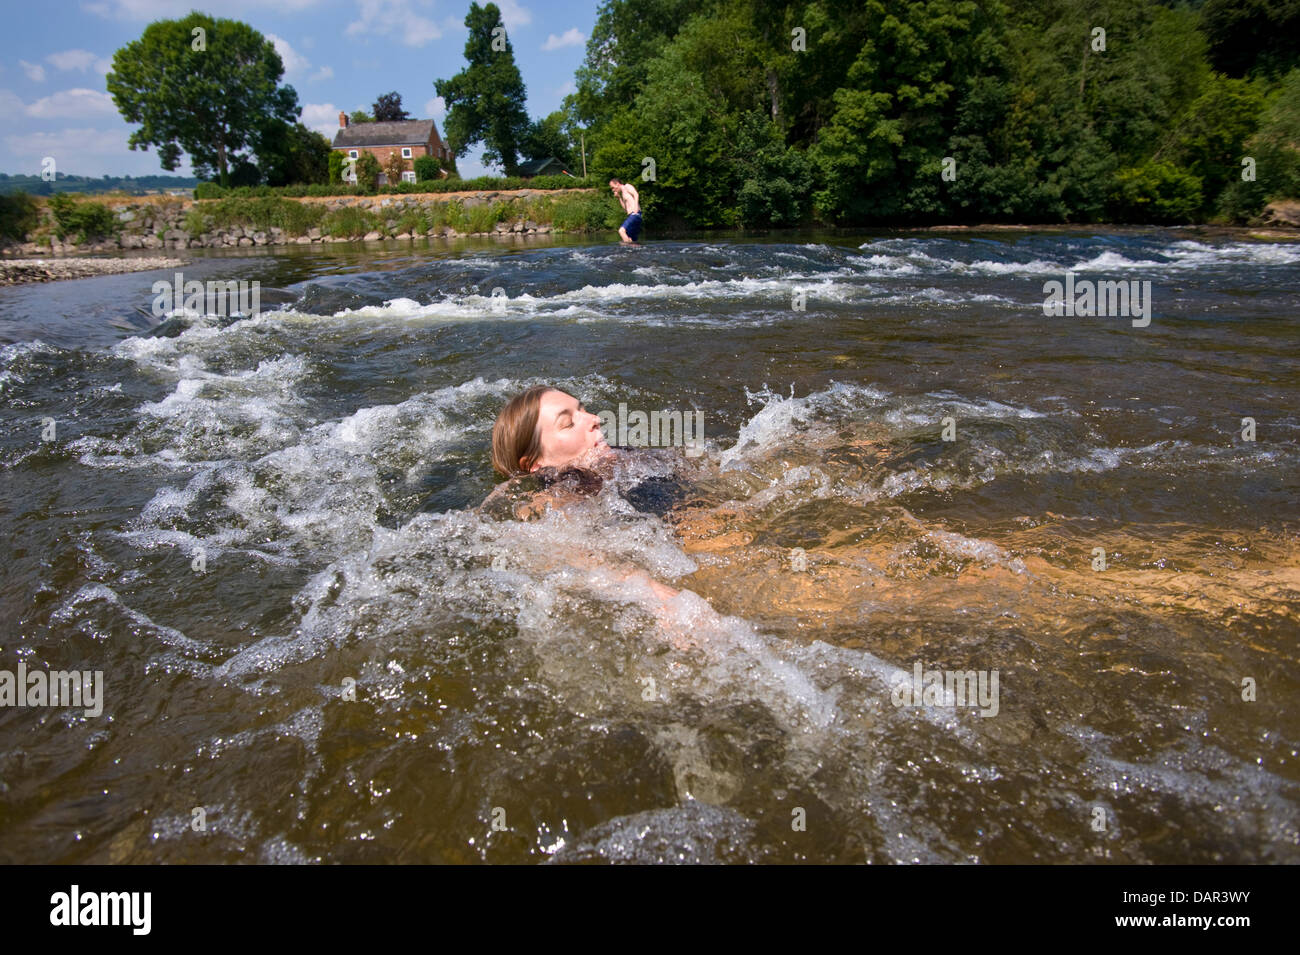 As temperatures reach 30ºC holidaymaker Julie Burrows from Norfolk cools off in the River Wye at Hay on Wye, - Stock Image